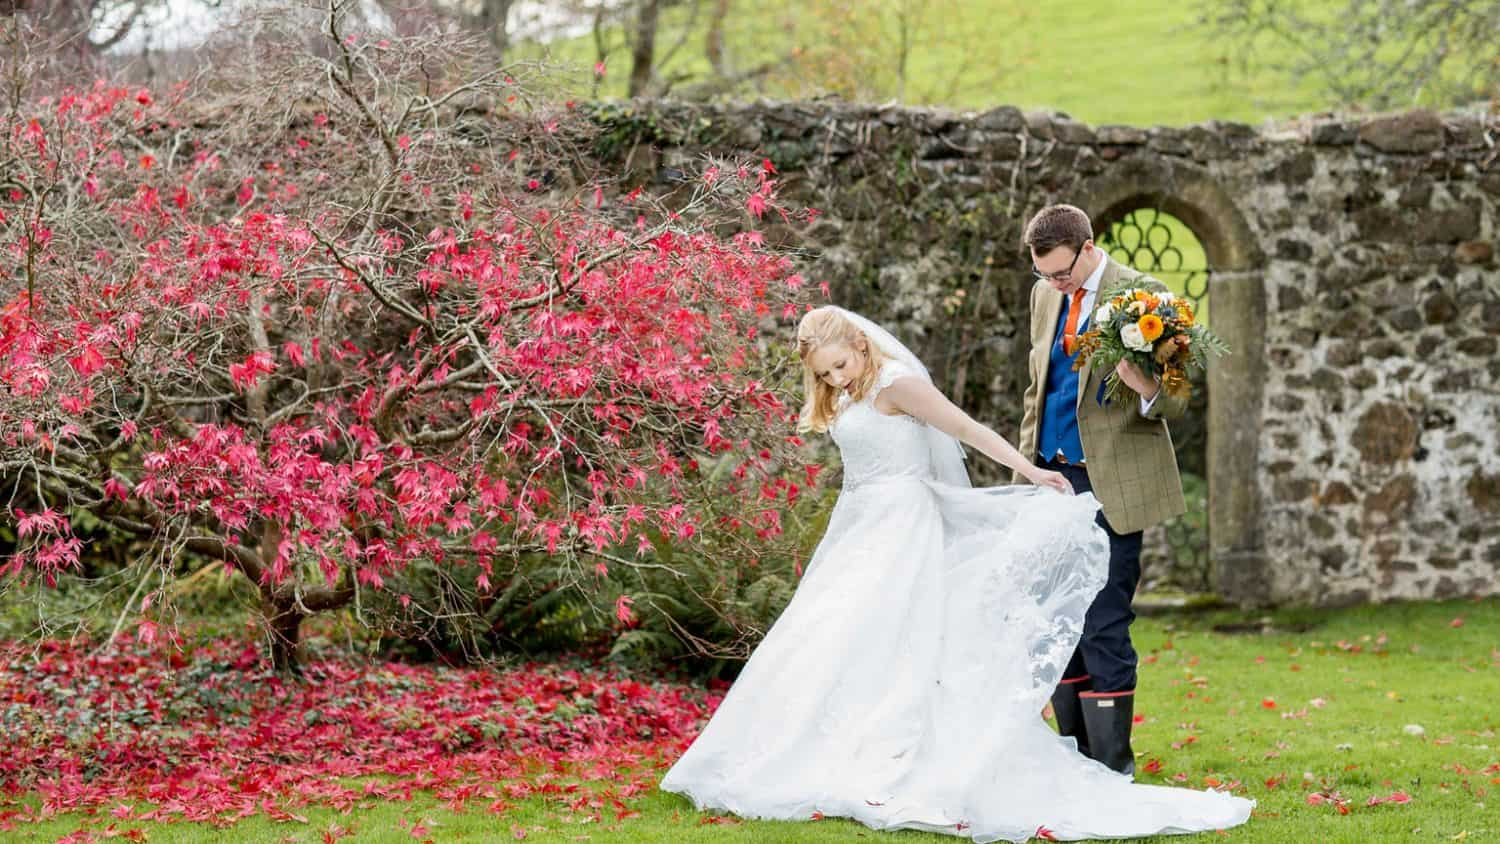 Wedding Photography, The Great Barn Devon